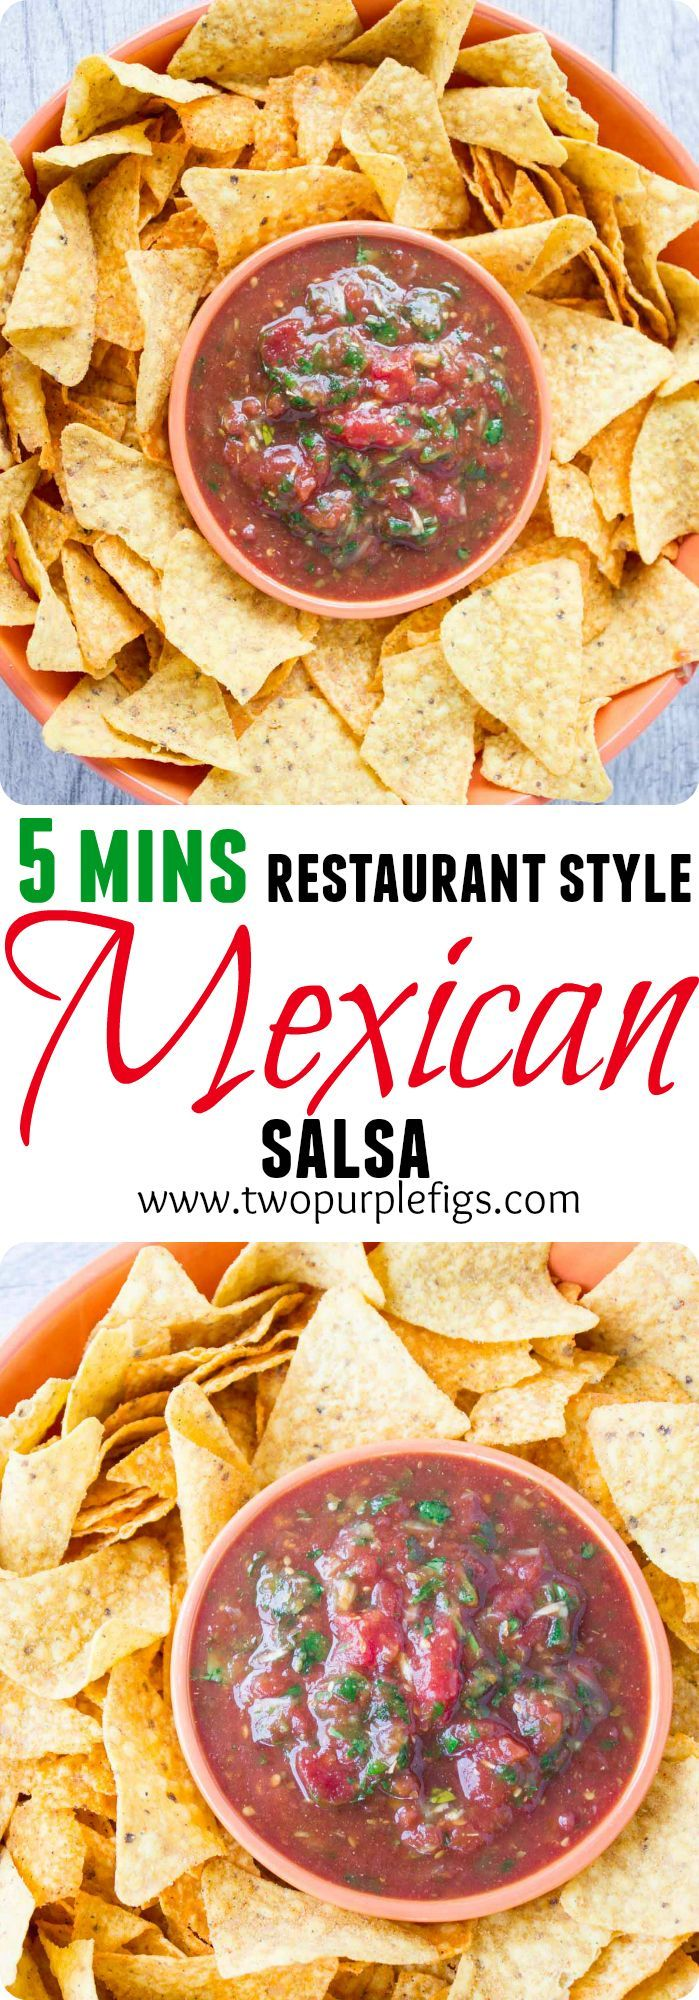 Restaurant Style Mexican Salsa. The best Salsa recipe you'll ever have--all made in a food processor and with a secret ingredient that adds unbelievable taste and texture! A last minute snack fix in 5 mins!  www.twopurplefigs.com